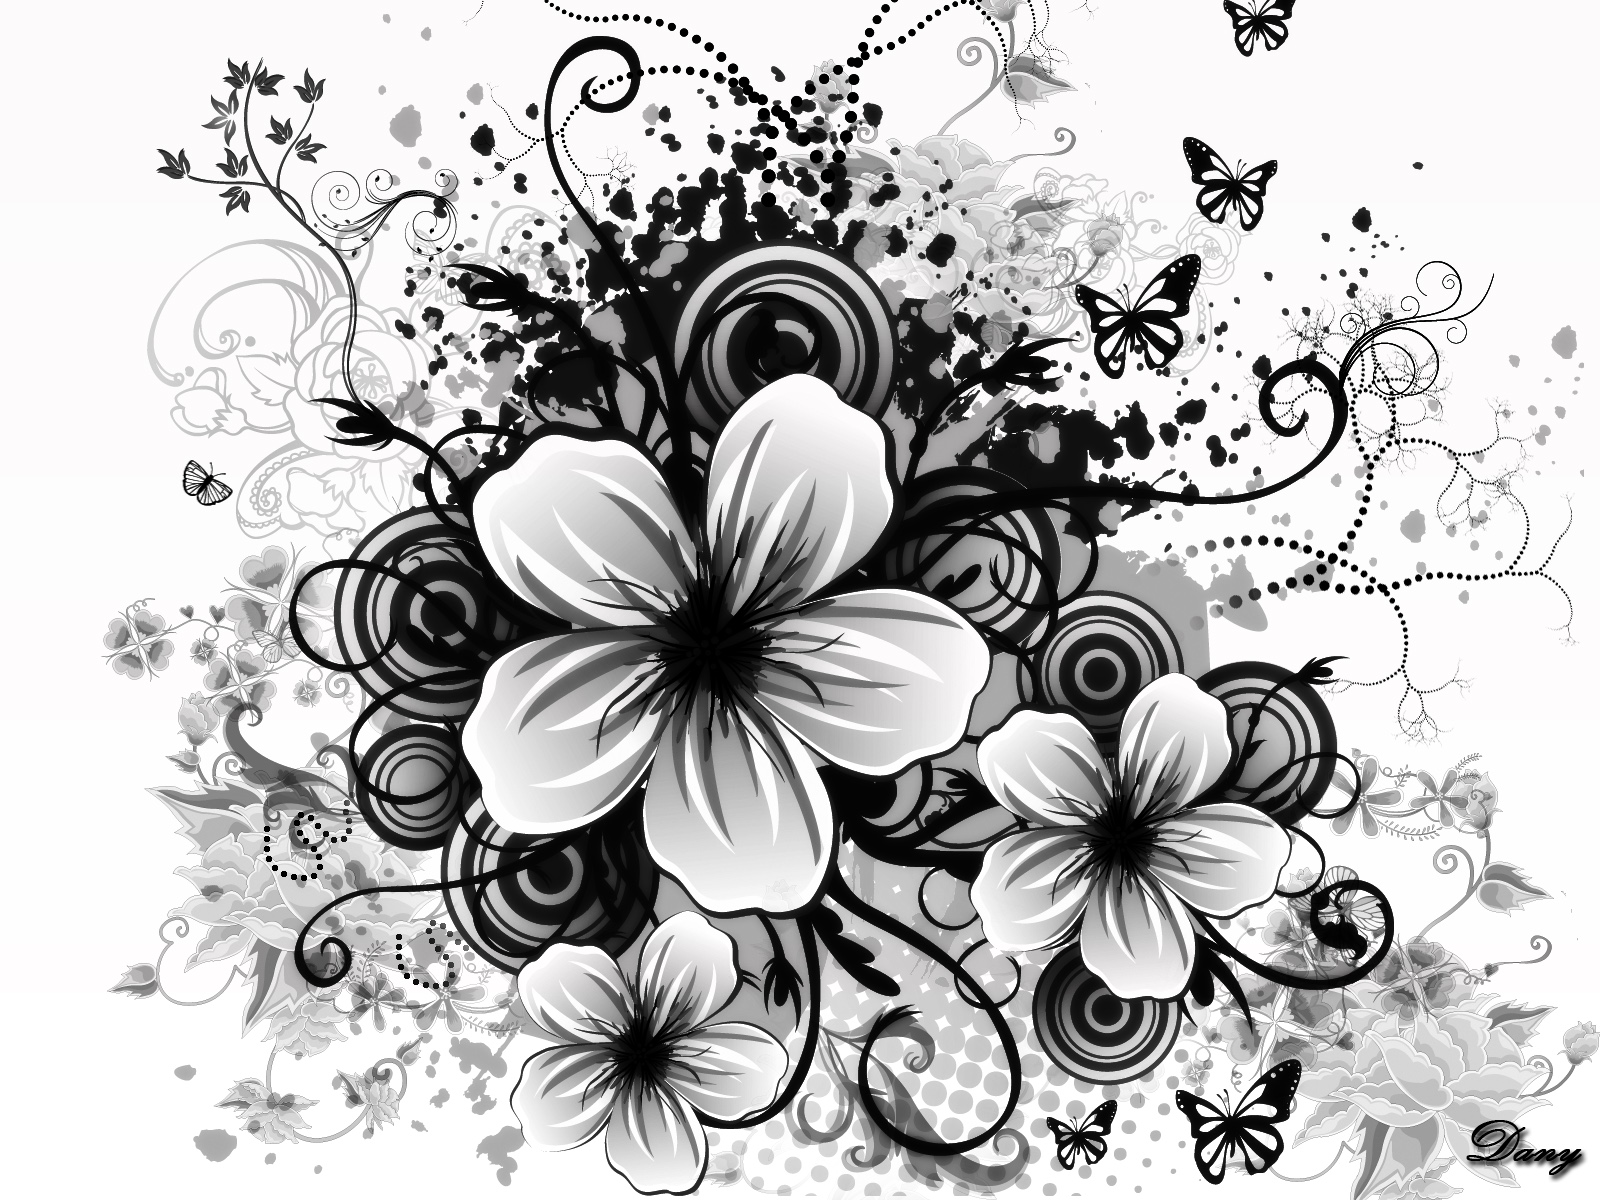 Black and white flowers wallpapers hd pixelstalk black and white flower wallpaper dowload free mightylinksfo